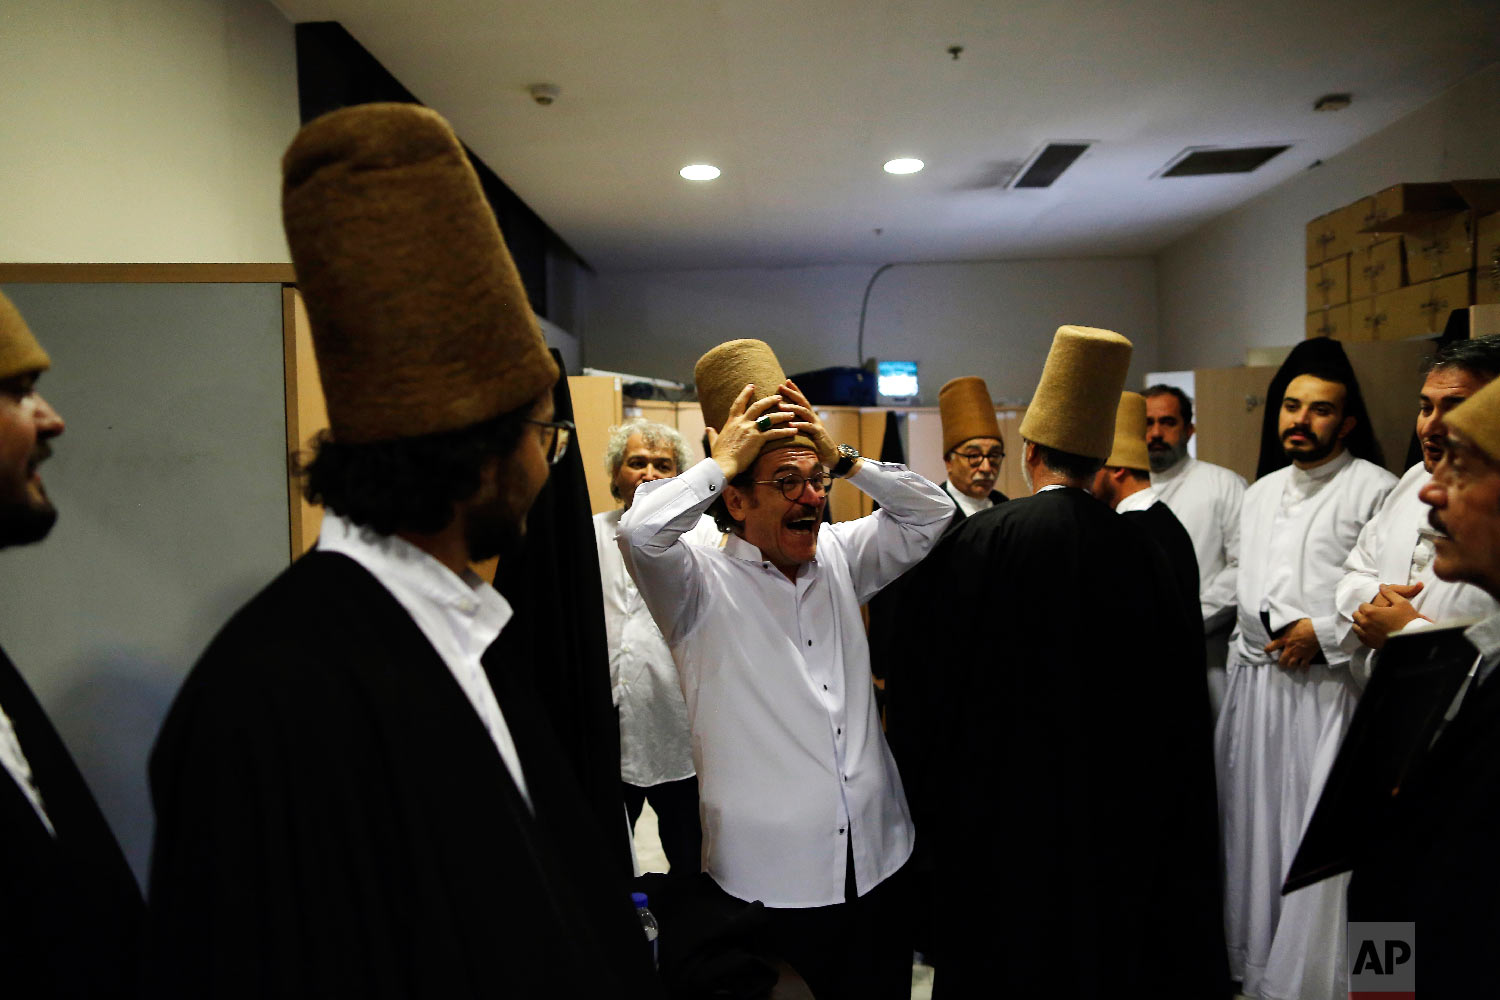 Whirling dervishes of the Mevlevi order enjoy a light moment in the locker room prior to a Sheb-i Arus ceremony in Konya, central Turkey, Sunday, Dec. 16, 2018. (AP Photo/Lefteris Pitarakis)